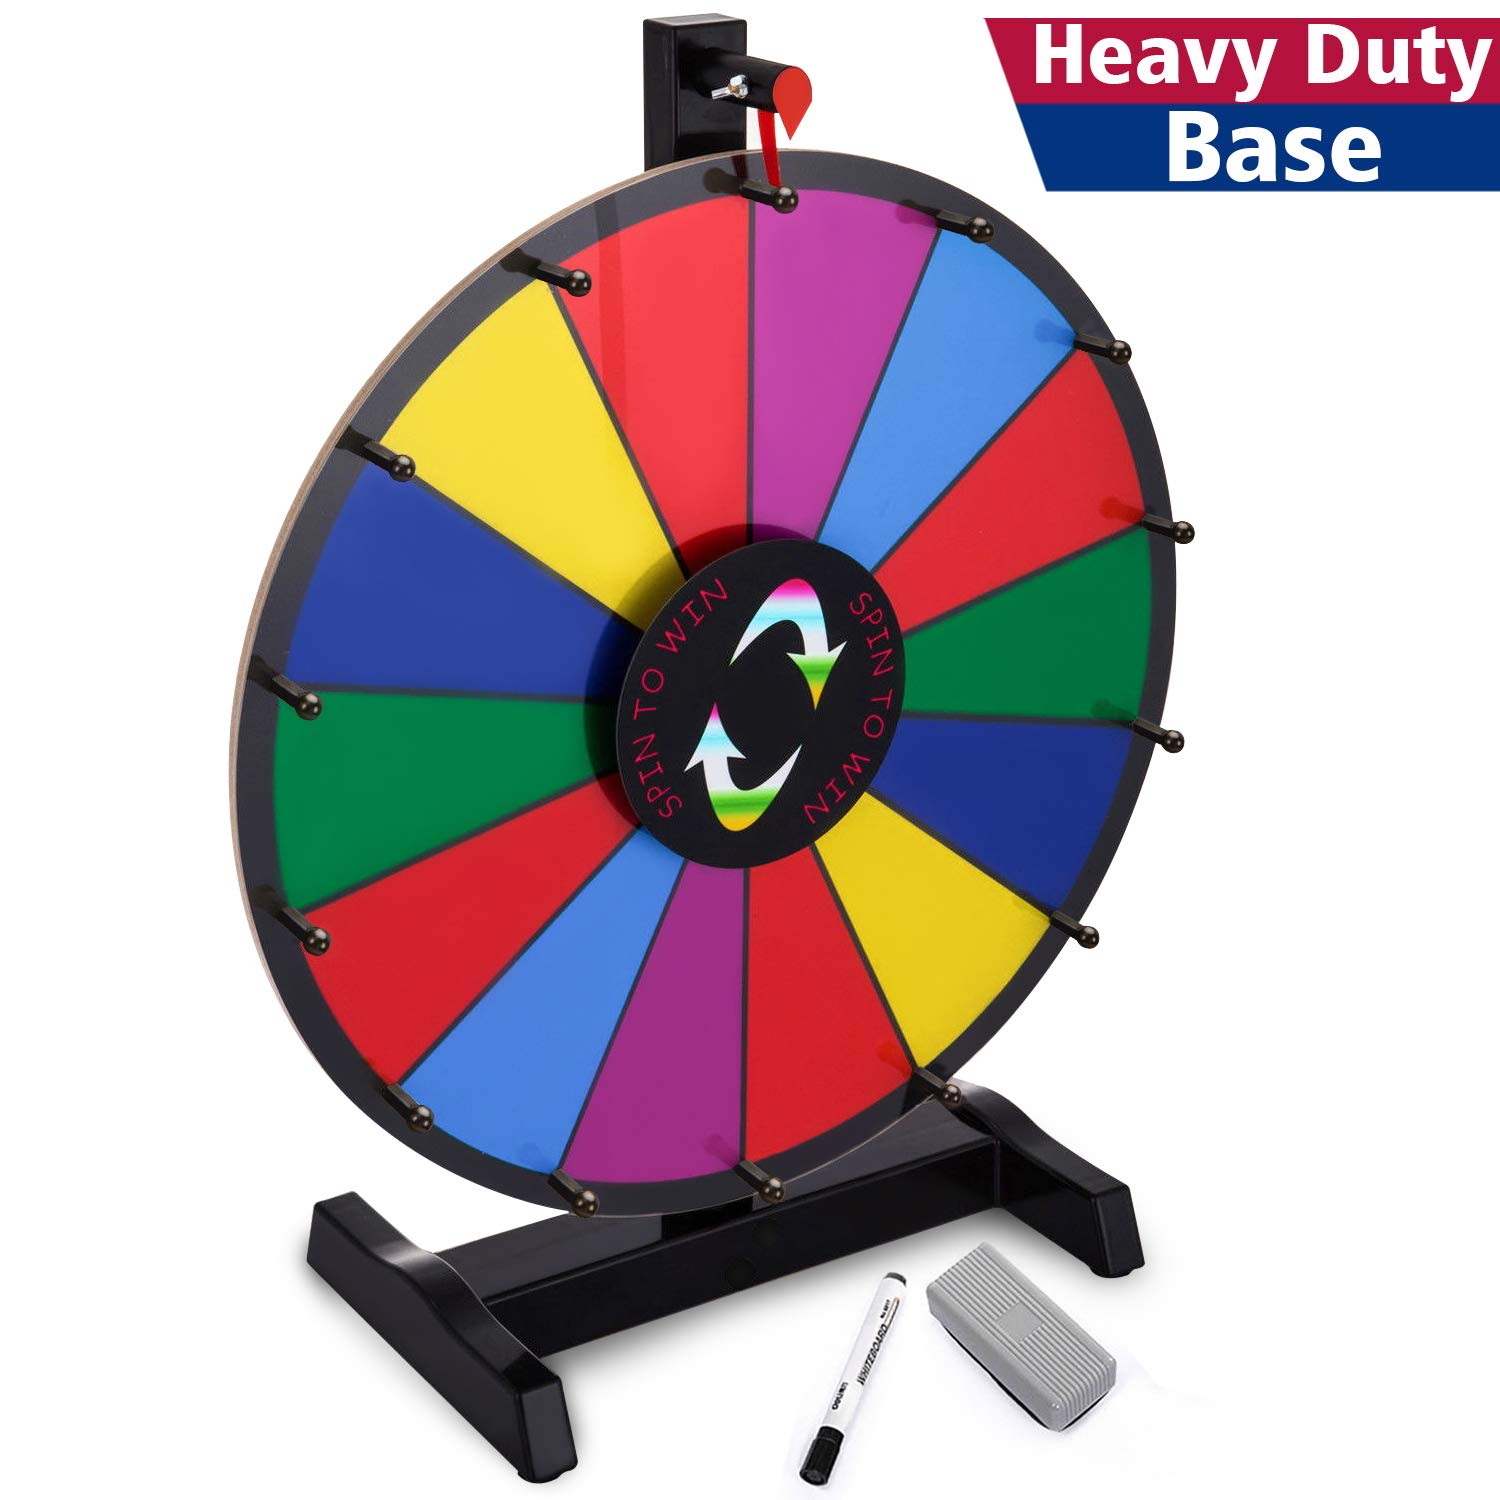 T-SIGN 18'' Heavy Duty Tabletop Spinning Prize Wheel, 14 Slots ColorPrize Wheel Spinnerwith Dry Erase Marker & Eraser As Customized Gifts for Carnival and Trade Show, Win The Fortune Spin Game by T-SIGN